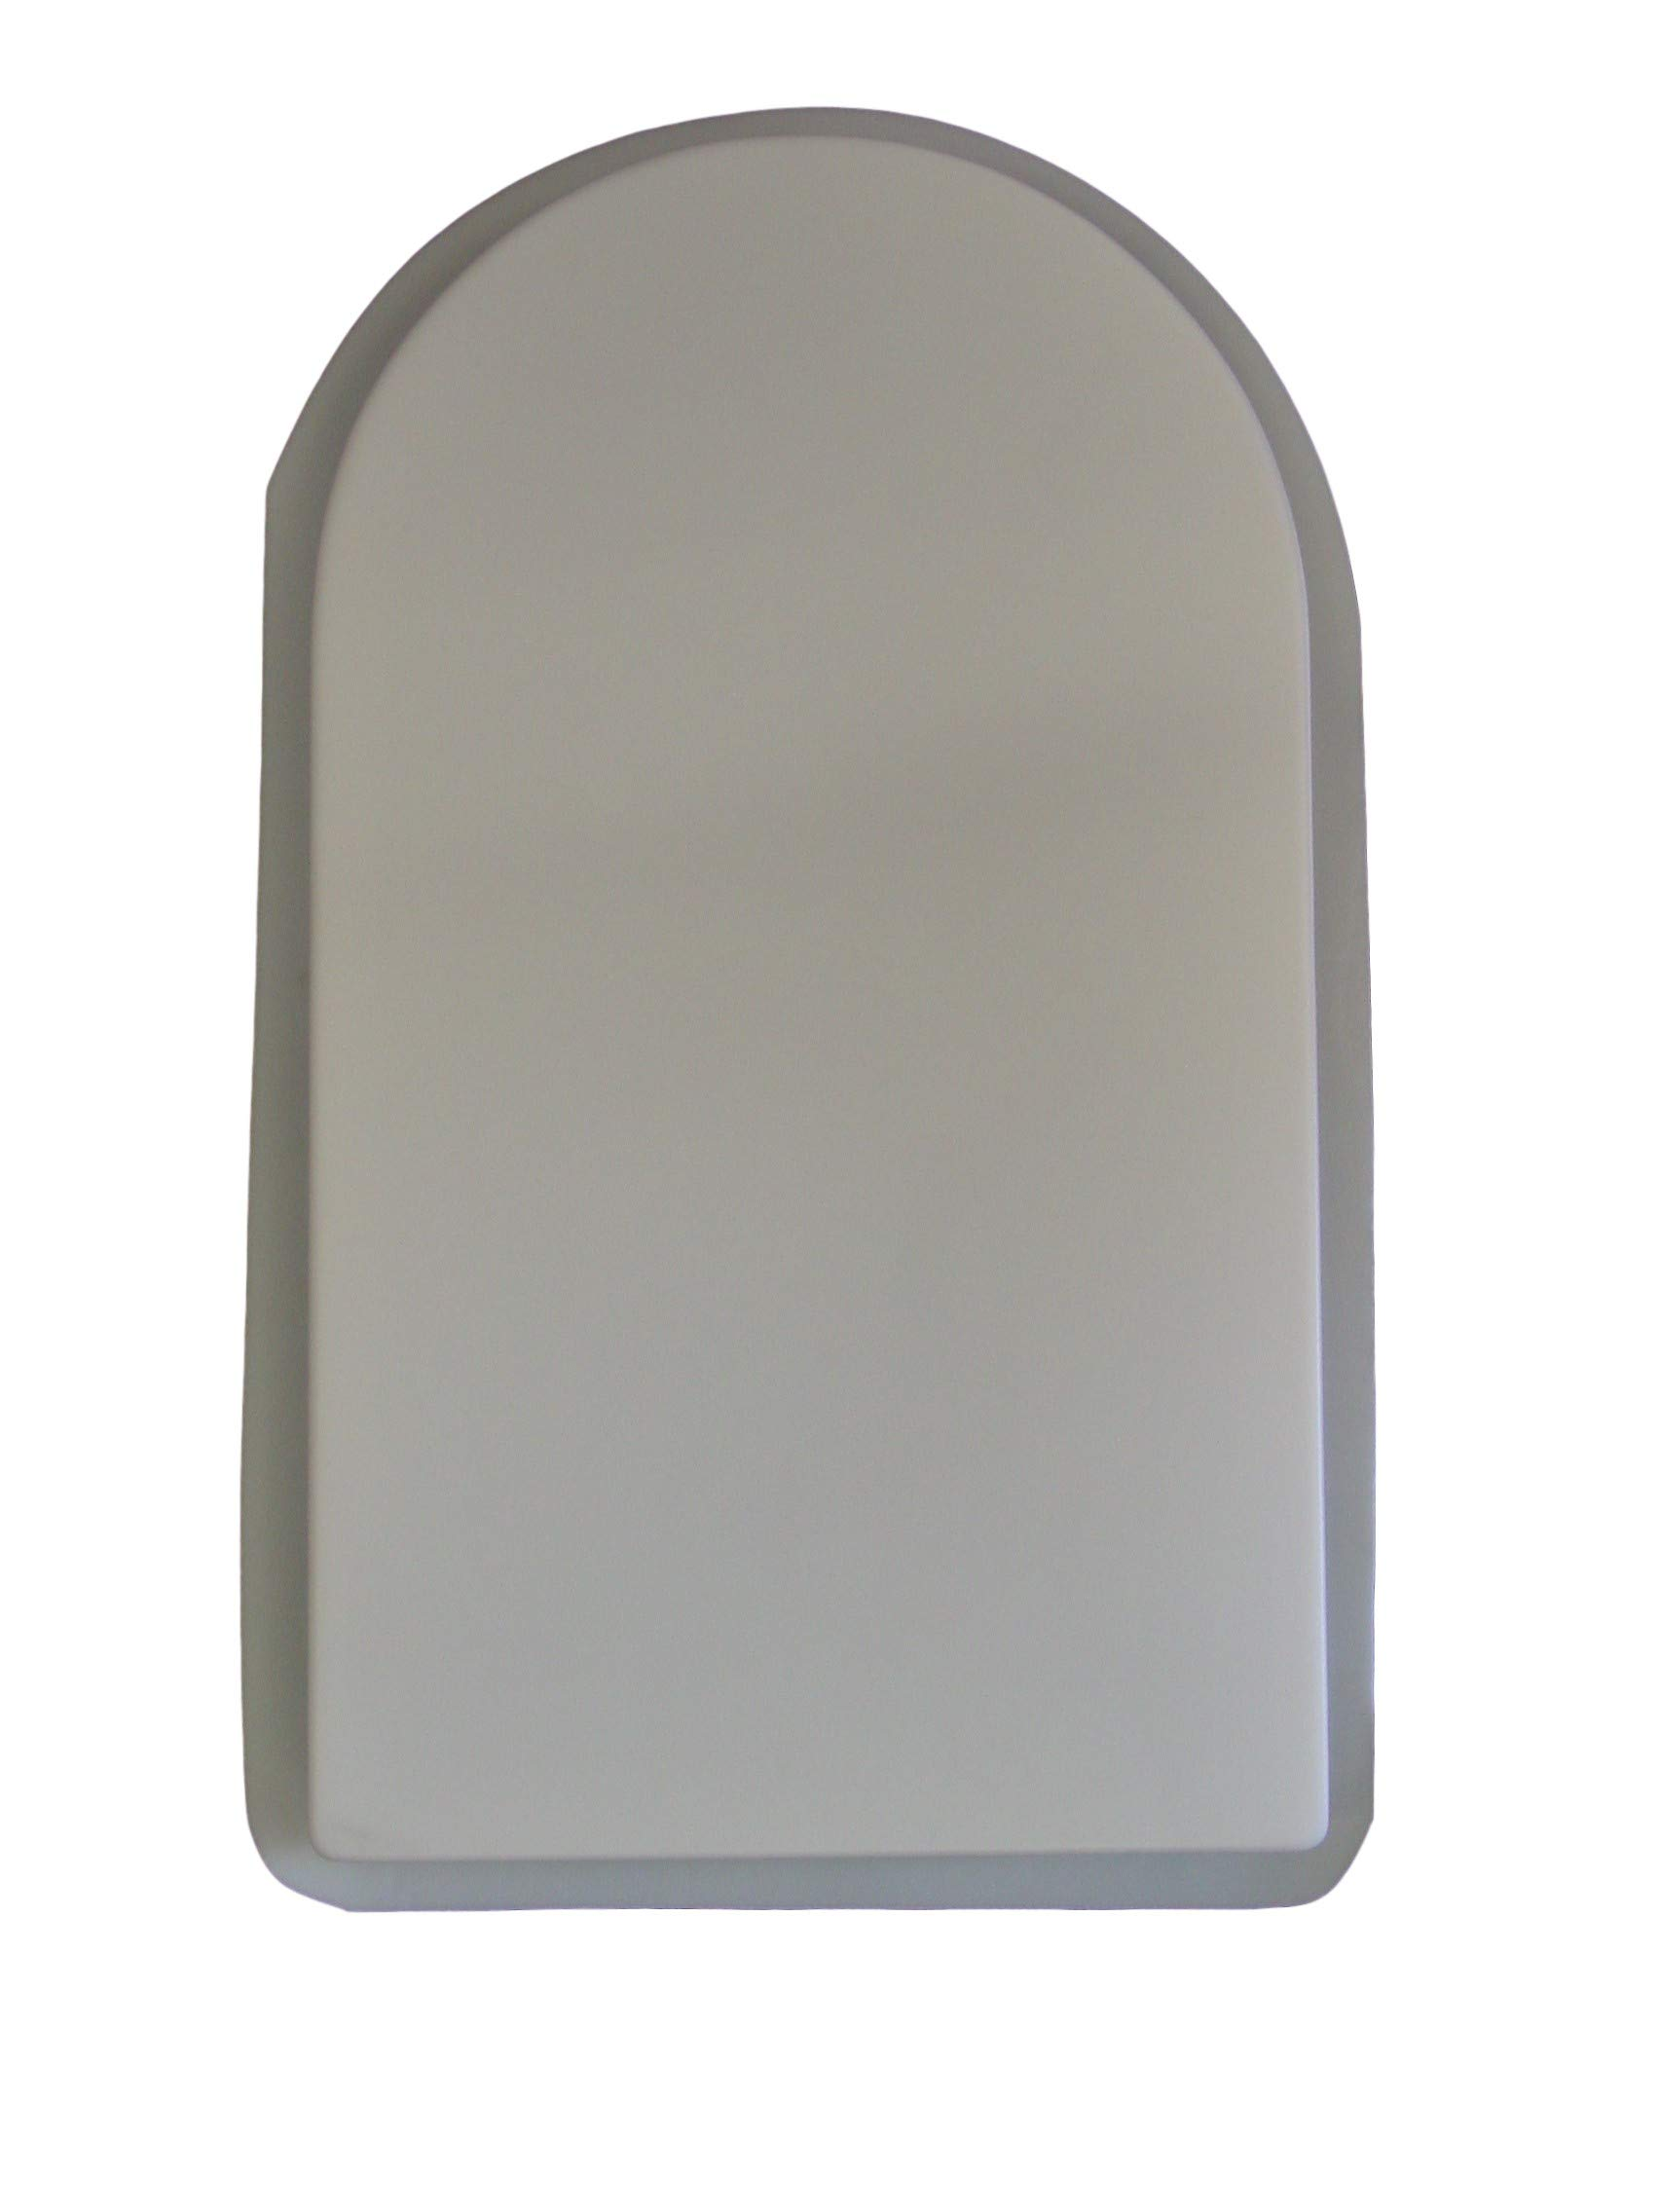 Smooth Plain Tombstone Concrete Plaster Mold 8006